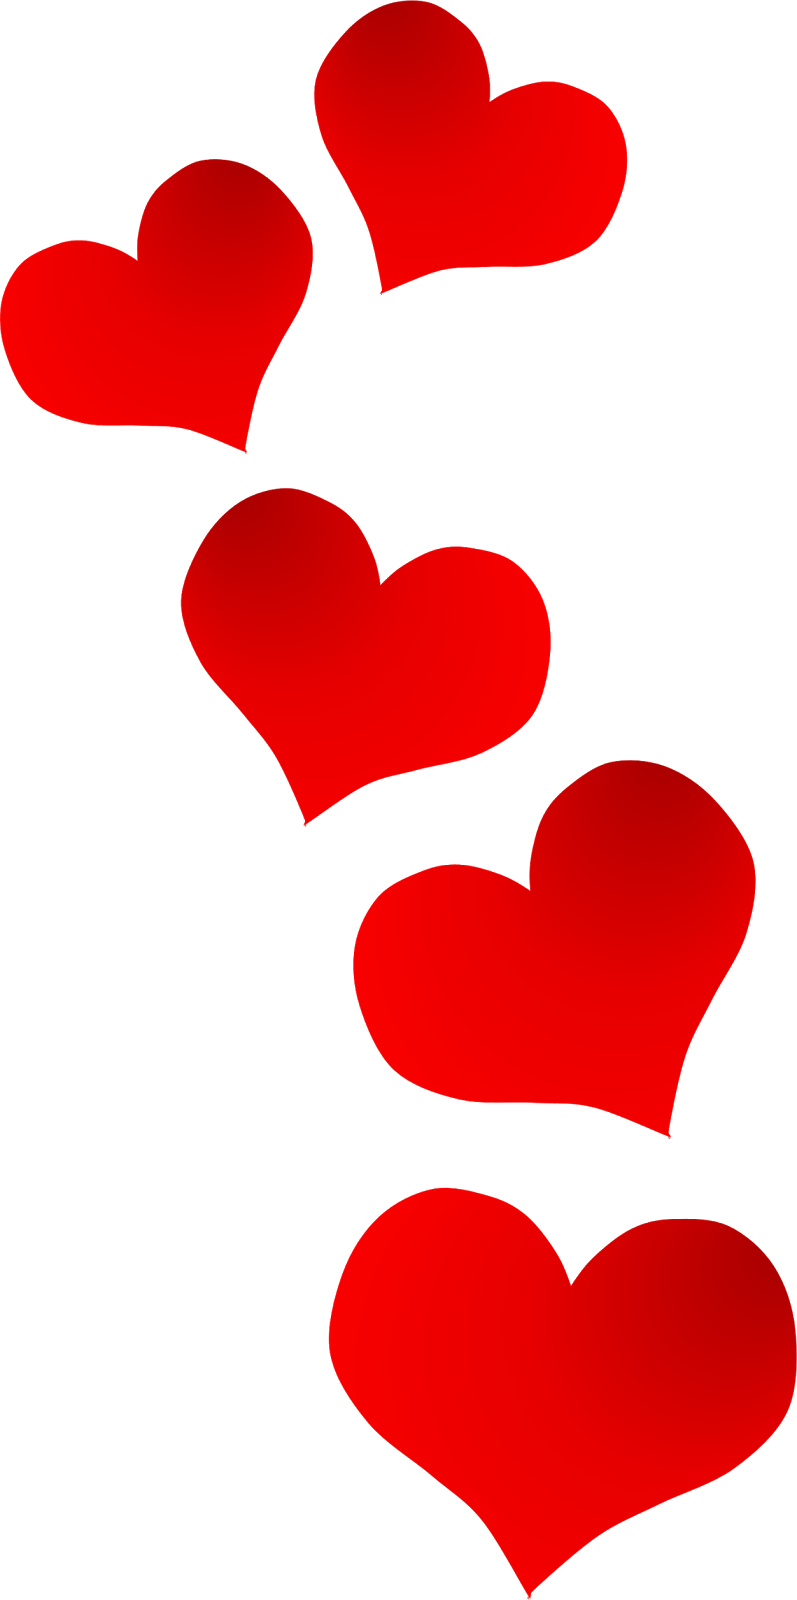 Hearts Clipart Png, Transparent PNG, png collections at dlf.pt.